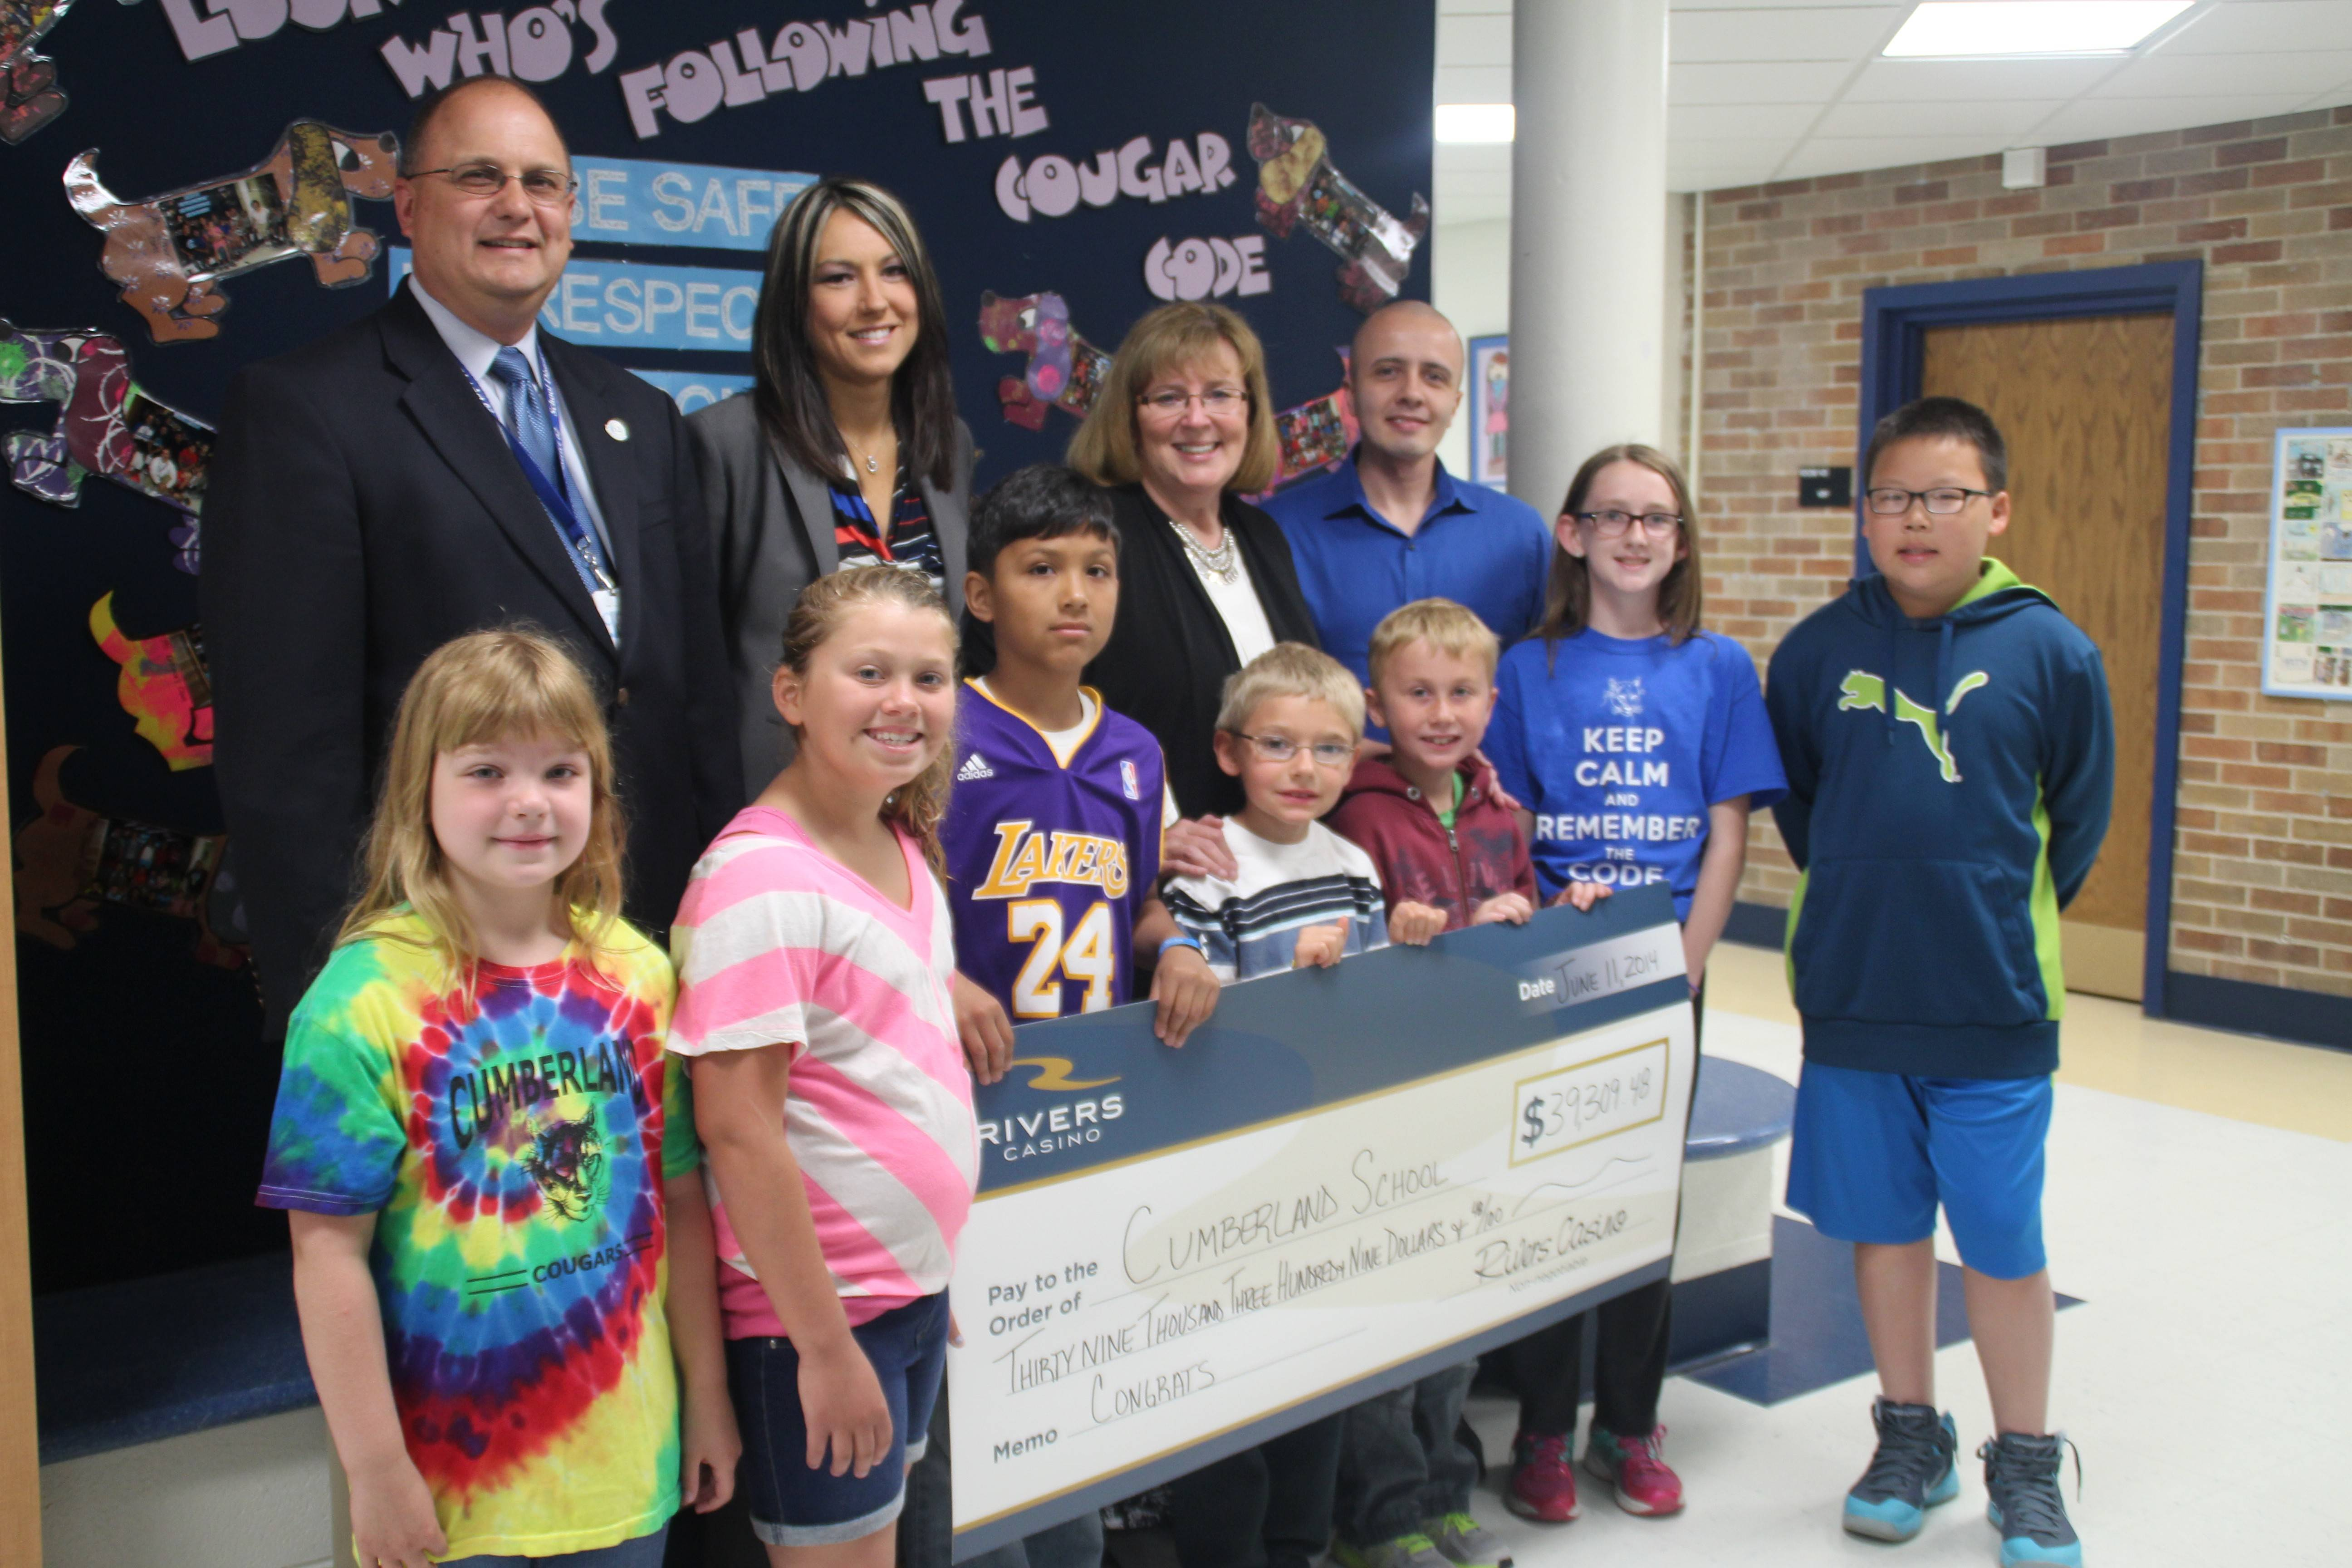 Beginning this fall, more computers will be available to Cumberland students because of a generous grant from the Rivers Foundation. Pictured, from left, are: Front row: Jayden Chelberg, Allison Swanson, Andrew Cruz, Jacob Krieger, Alex Krecu, Aileen O'Connor and Daniel Choi; rear row: Dist. 62 Associate Superintendent Paul Hertel; Jill Wilcox, Rivers Foundation, Colleen White, Cumberland principal and Jackey Valadez, Rivers Foundation.